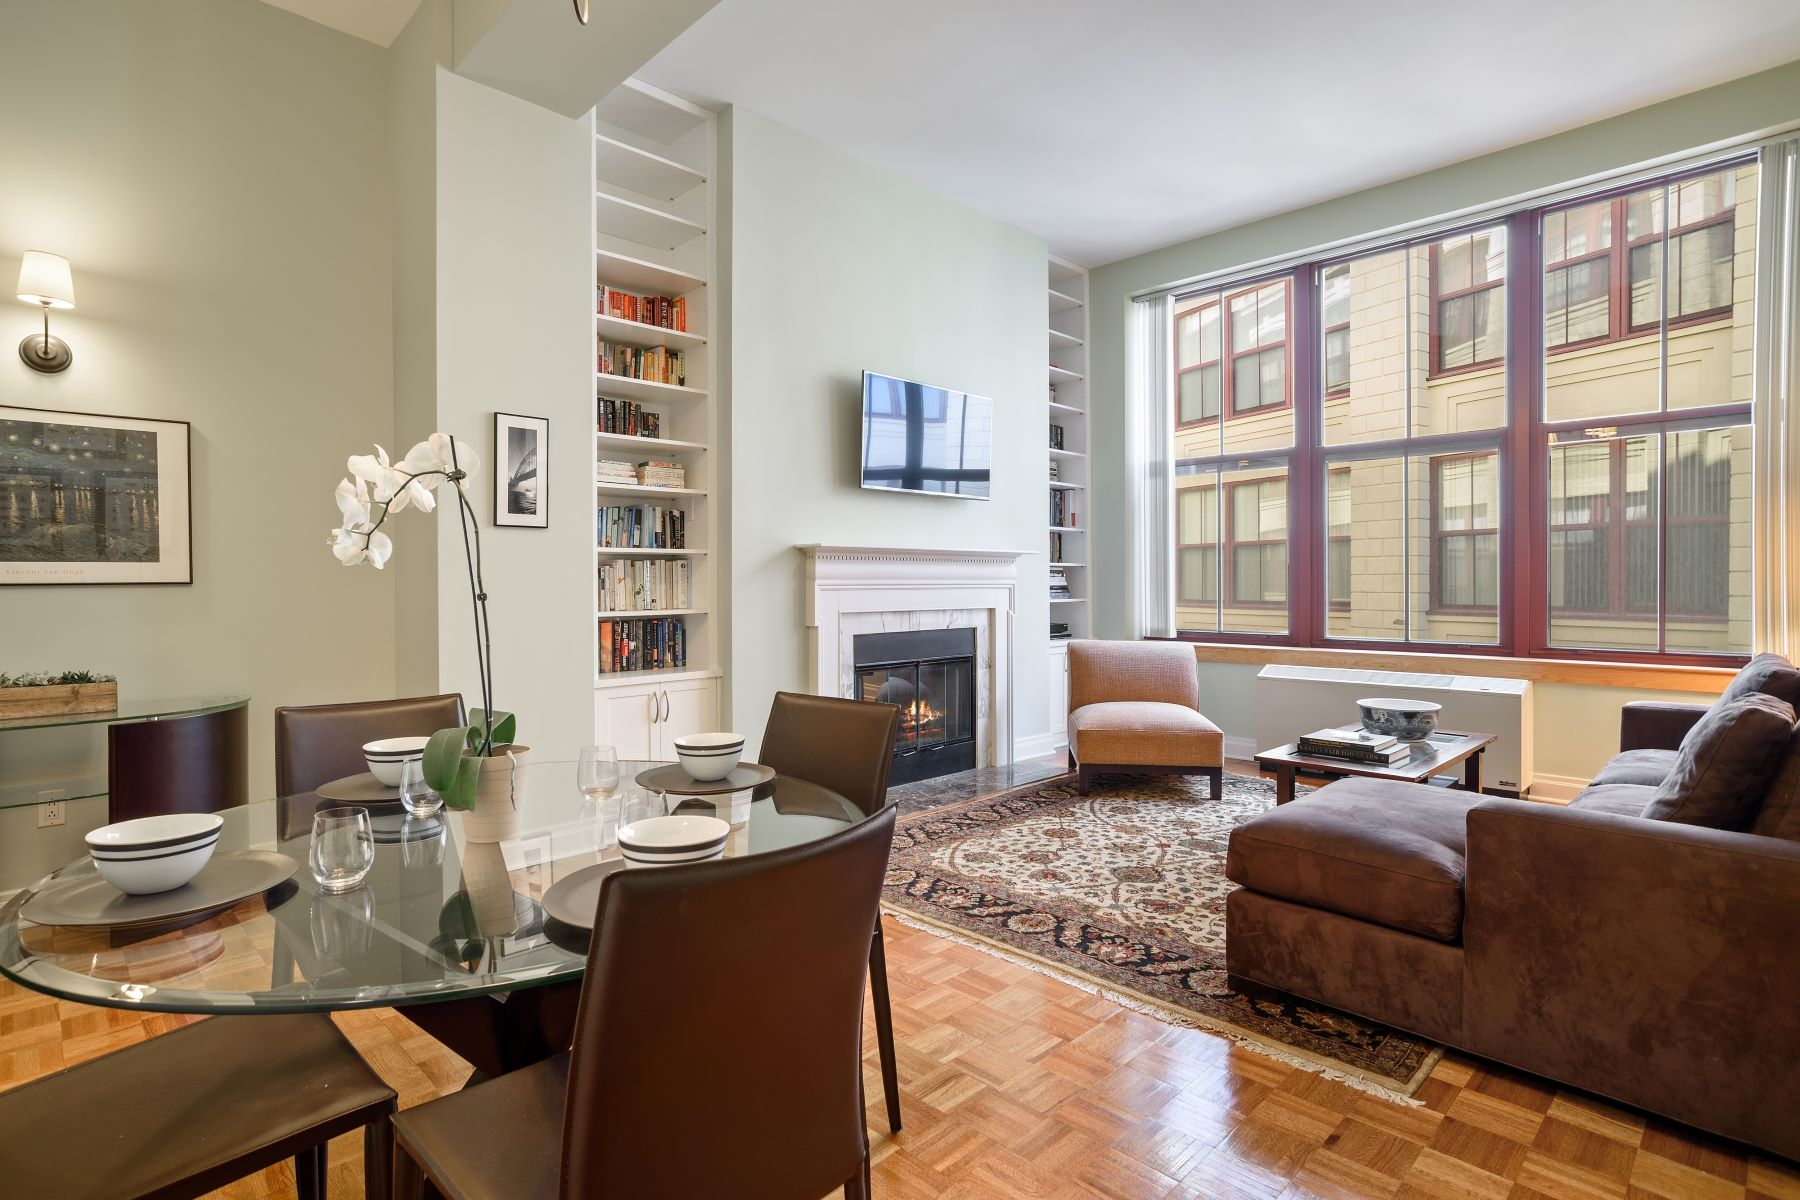 Condominiums for Sale at 1 Scarsdale Road, 309 Tuckahoe, New York 10707 United States